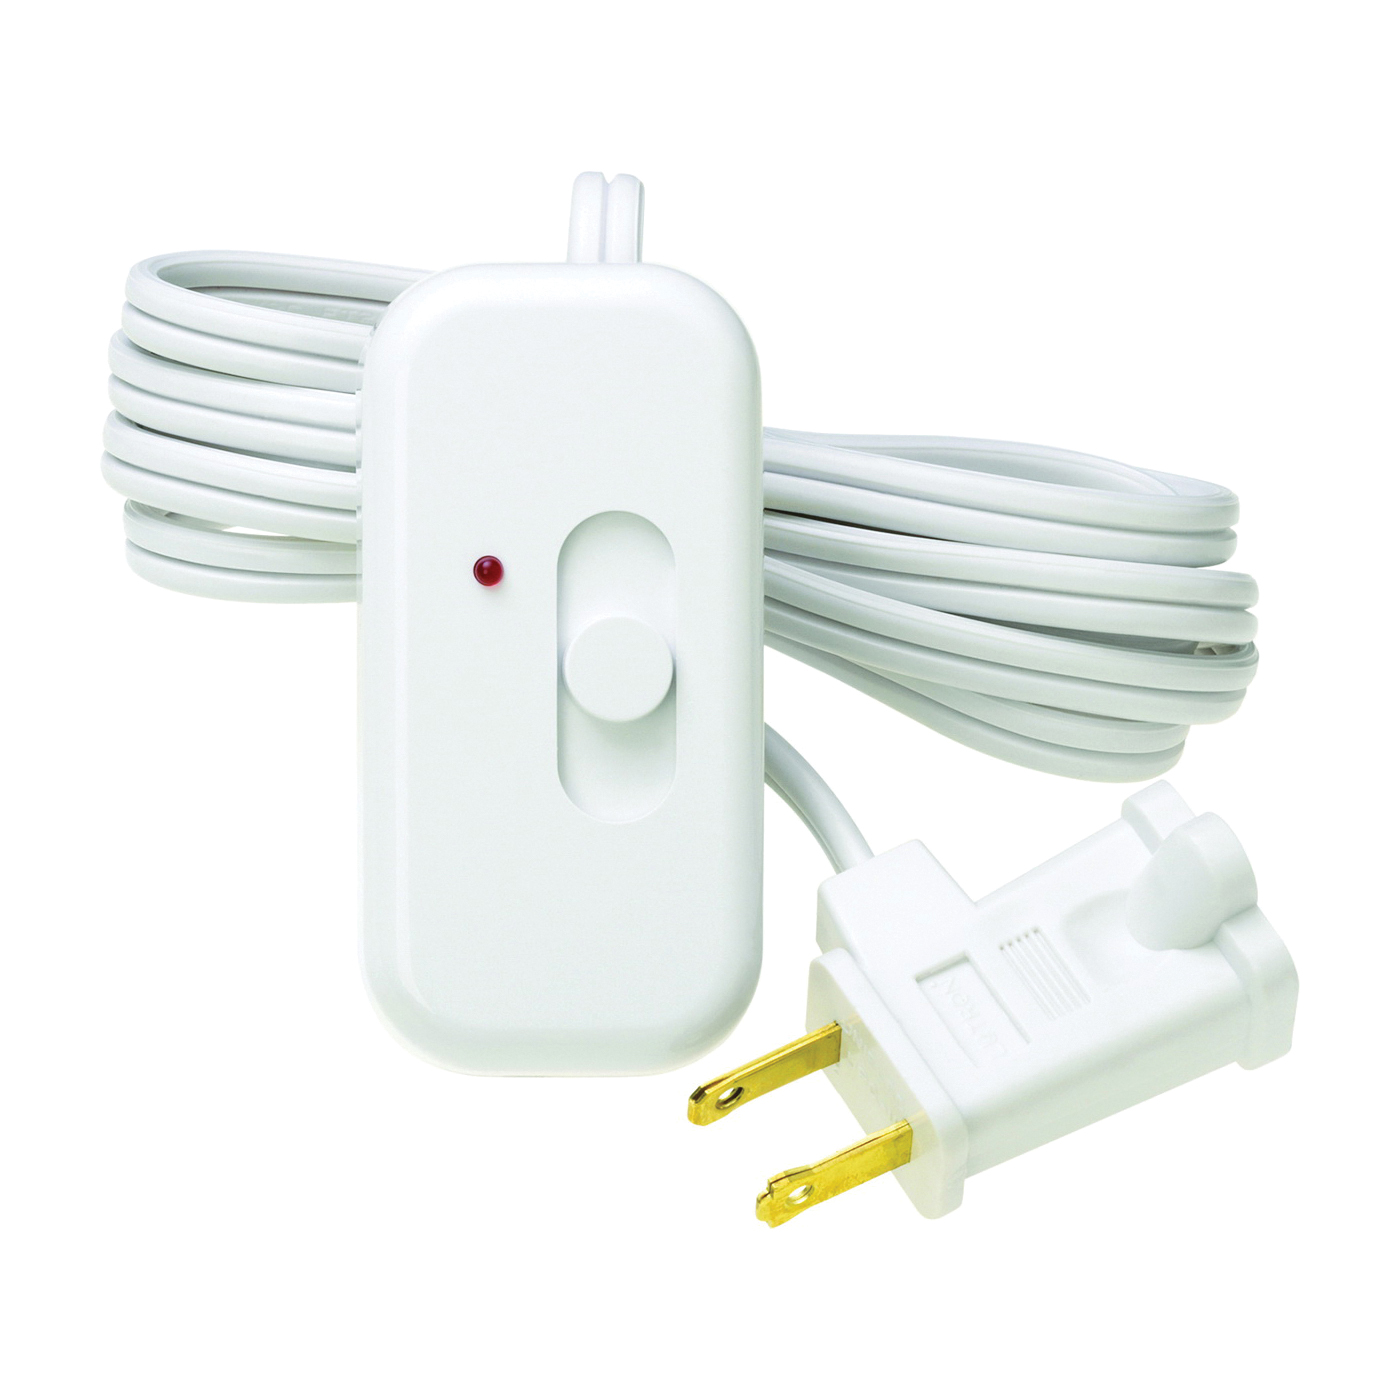 Picture of Lutron Credenza TT-300H-WH Lamp Dimmer, 2.5 A, 120 V, 300 W, Halogen, Incandescent Lamp, White